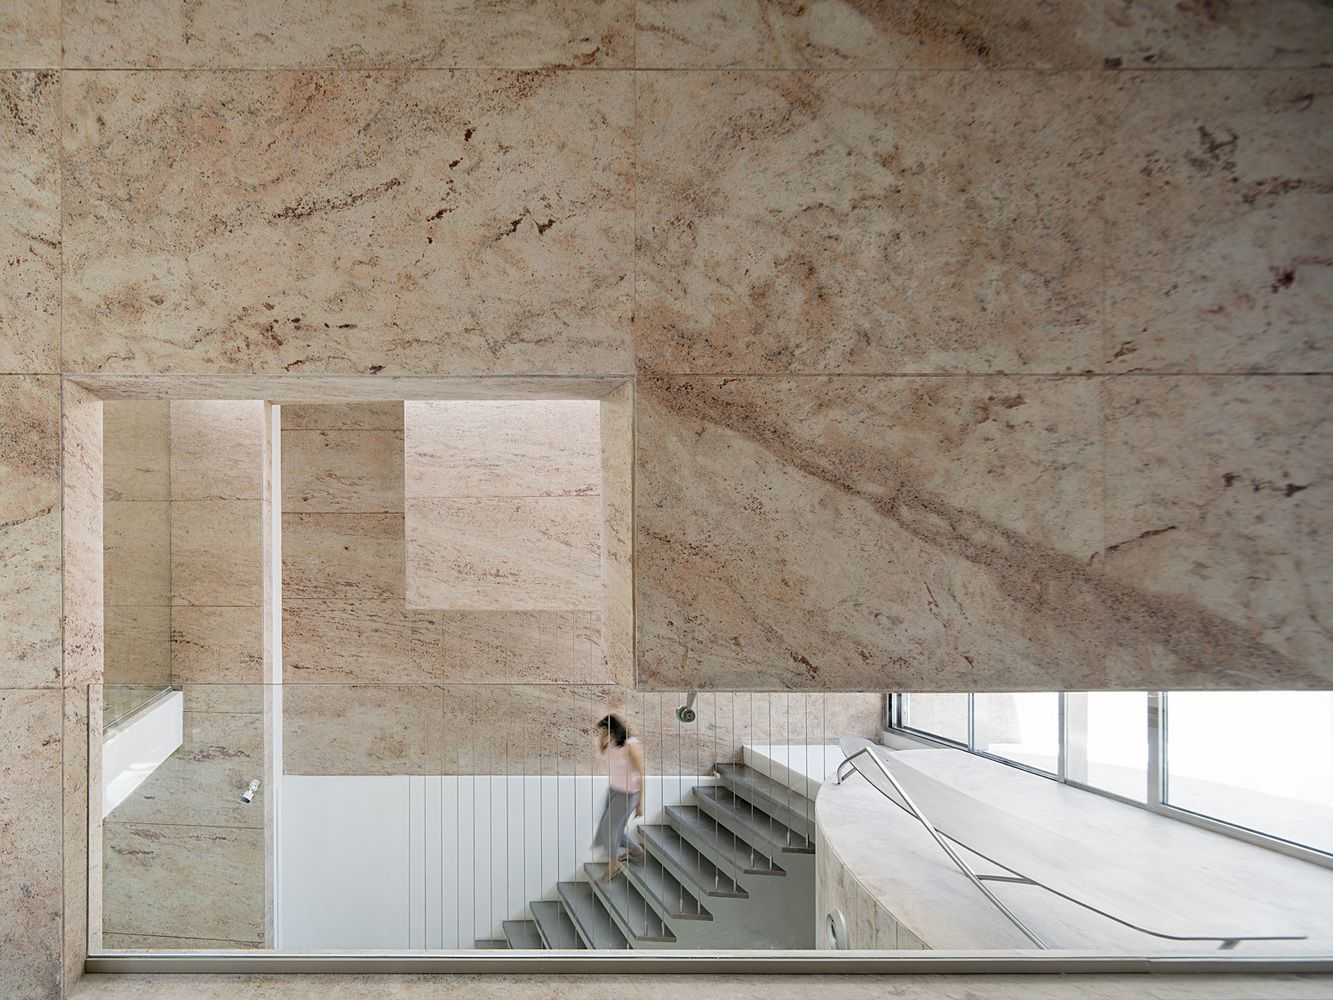 Gallery Of Office 543 Charged Voids 4 In 2020 Space Architecture Modernist Architects Building Exterior